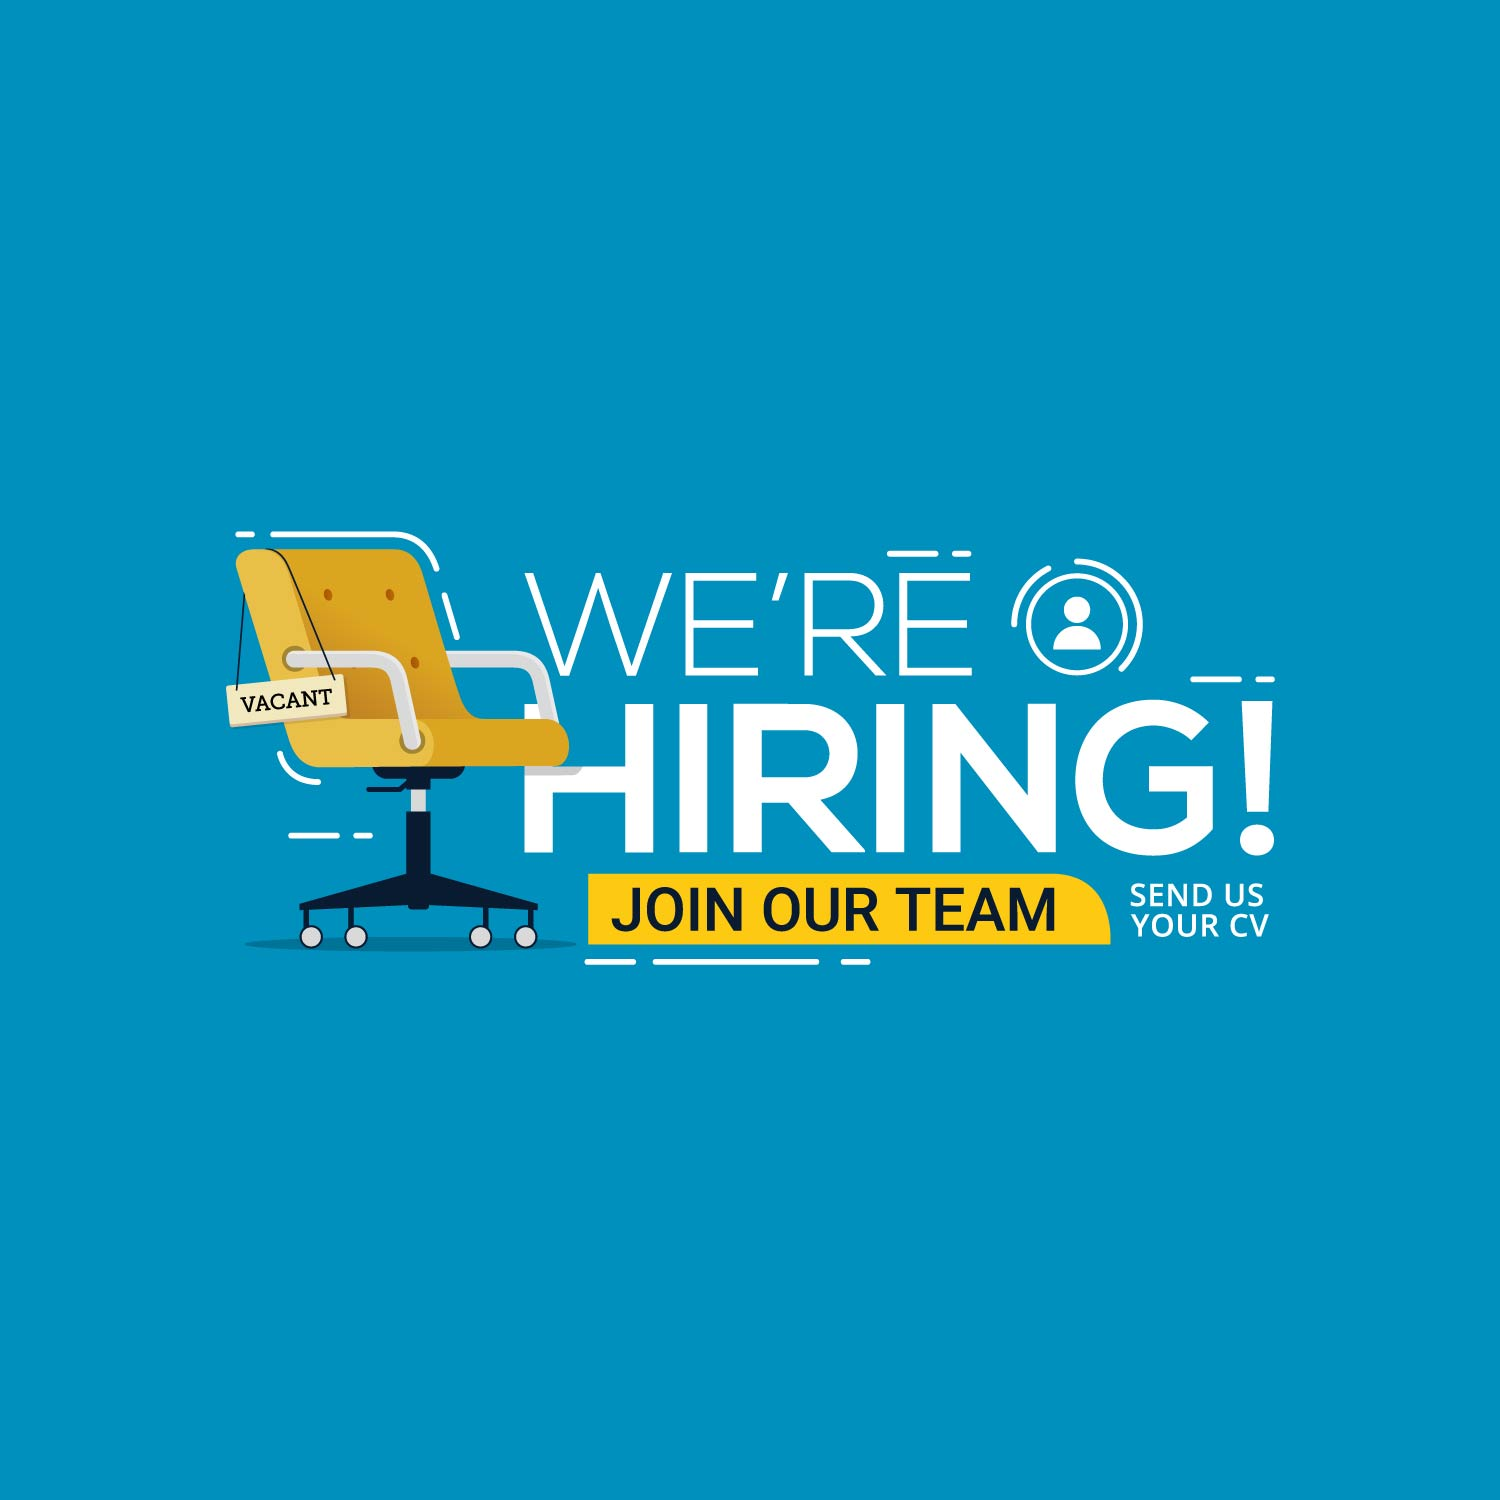 We're hiring with office chair and vacant sign 1213015 Vector Art at Vecteezy